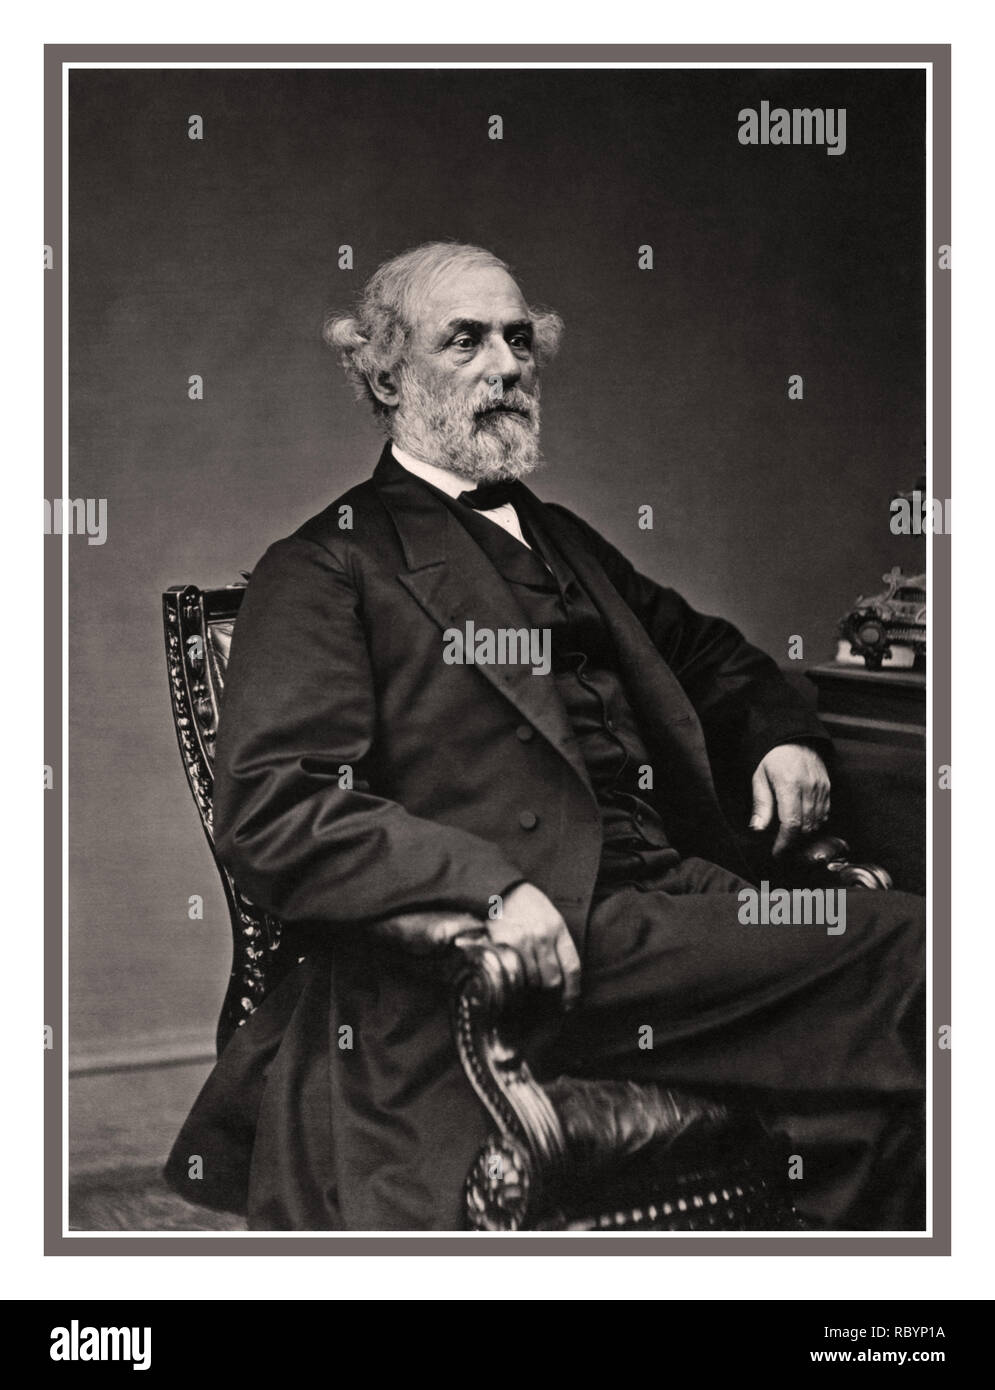 ROBERT E LEE Archive 1860's B&W formal portrait image of Confederate General Robert E. Lee in May 1869 General in Chief of the Armies of the Confederate States - Stock Image